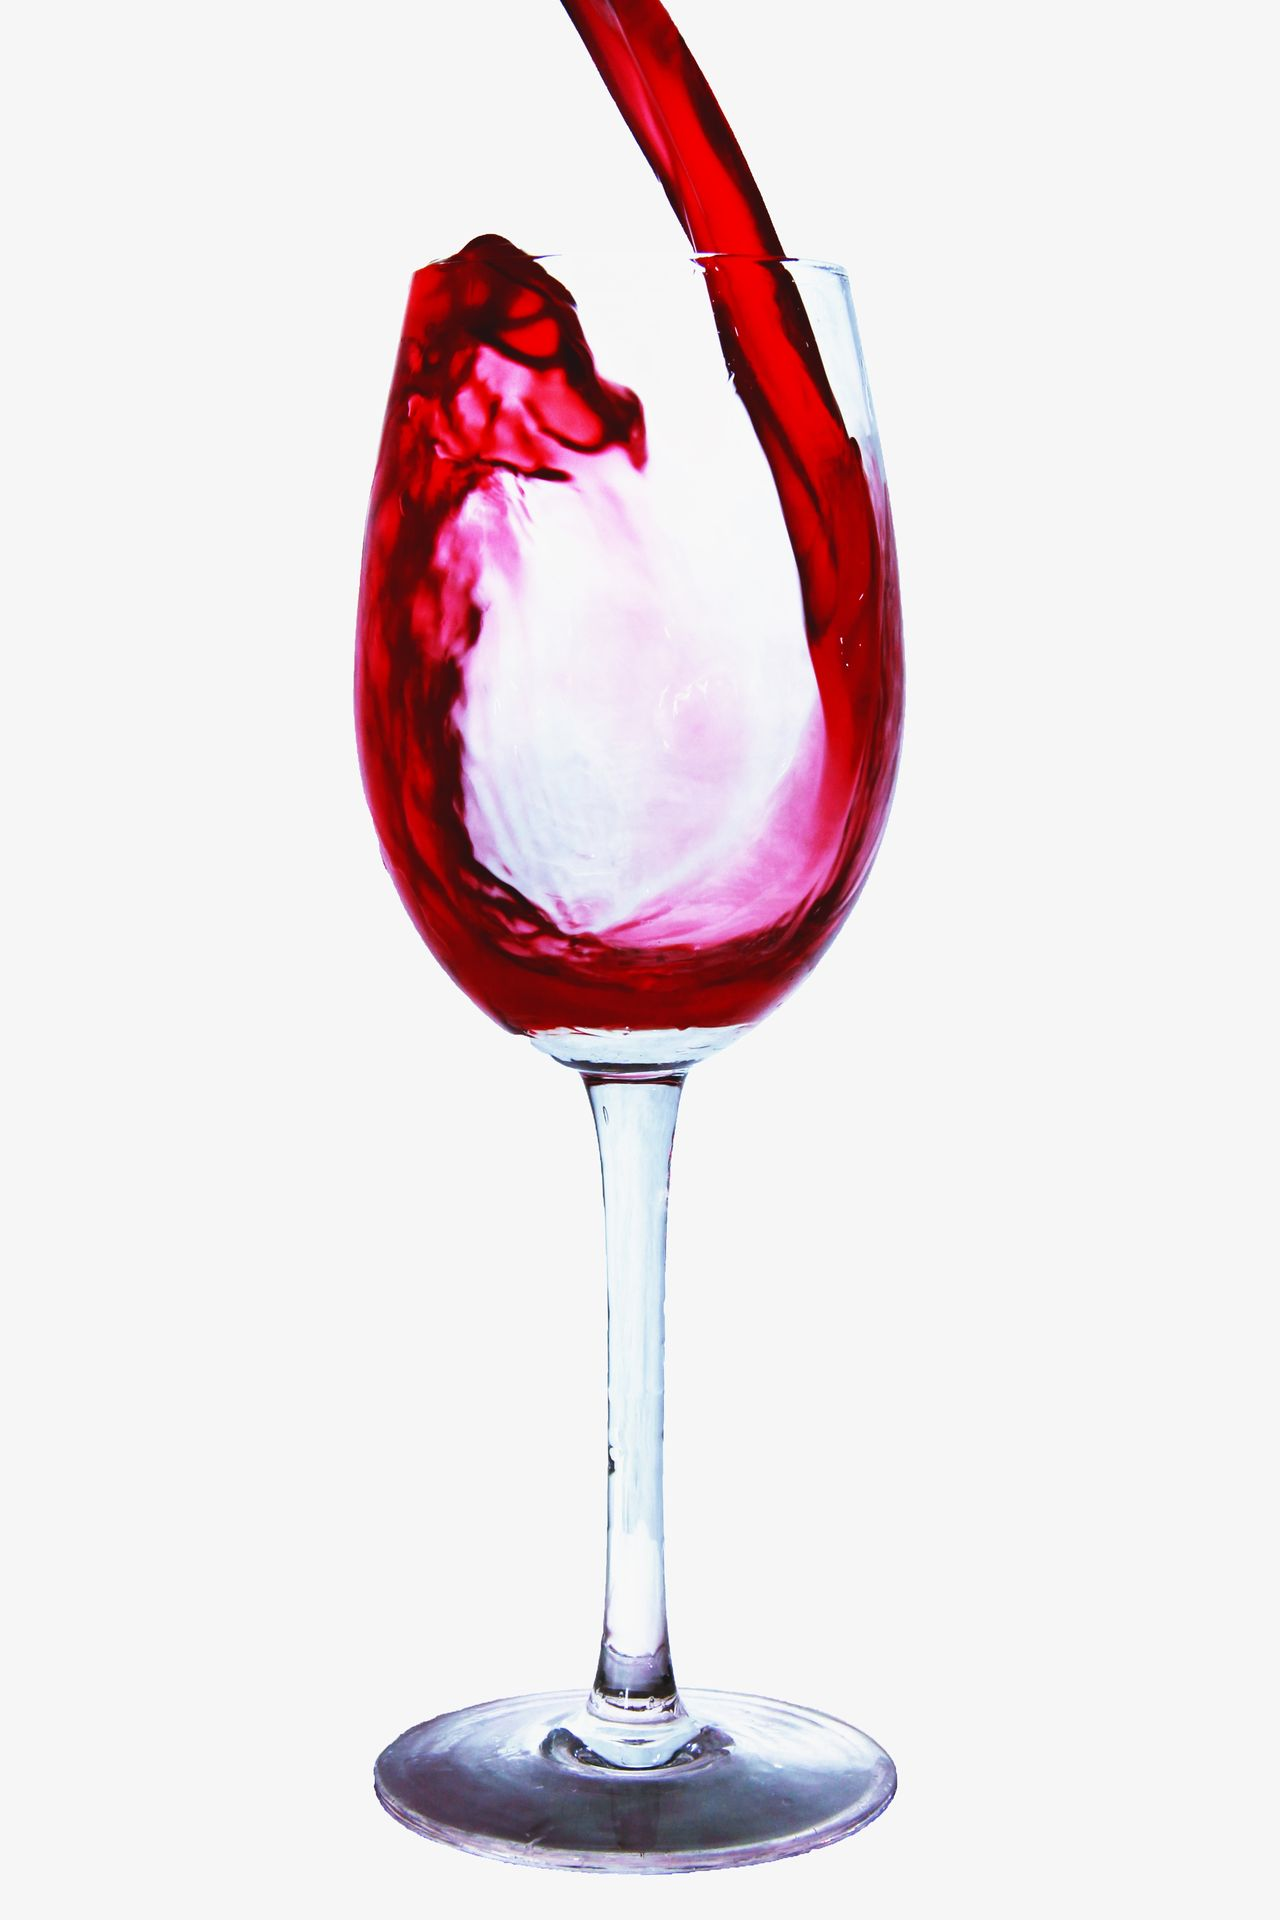 Alcalá De Henares. (Madrid) Copa De Vinos Drink El Tiempo Detenido Enjoying Life Escanciando EyeEm Best Shots EyeEm Gallery Eyeemmadrid Freshness Glass Happy Healthy Eating Light Motion Capture Motion Photography No People Red Red Color Sumiller Tapeo Vino Tinto White Background Wine